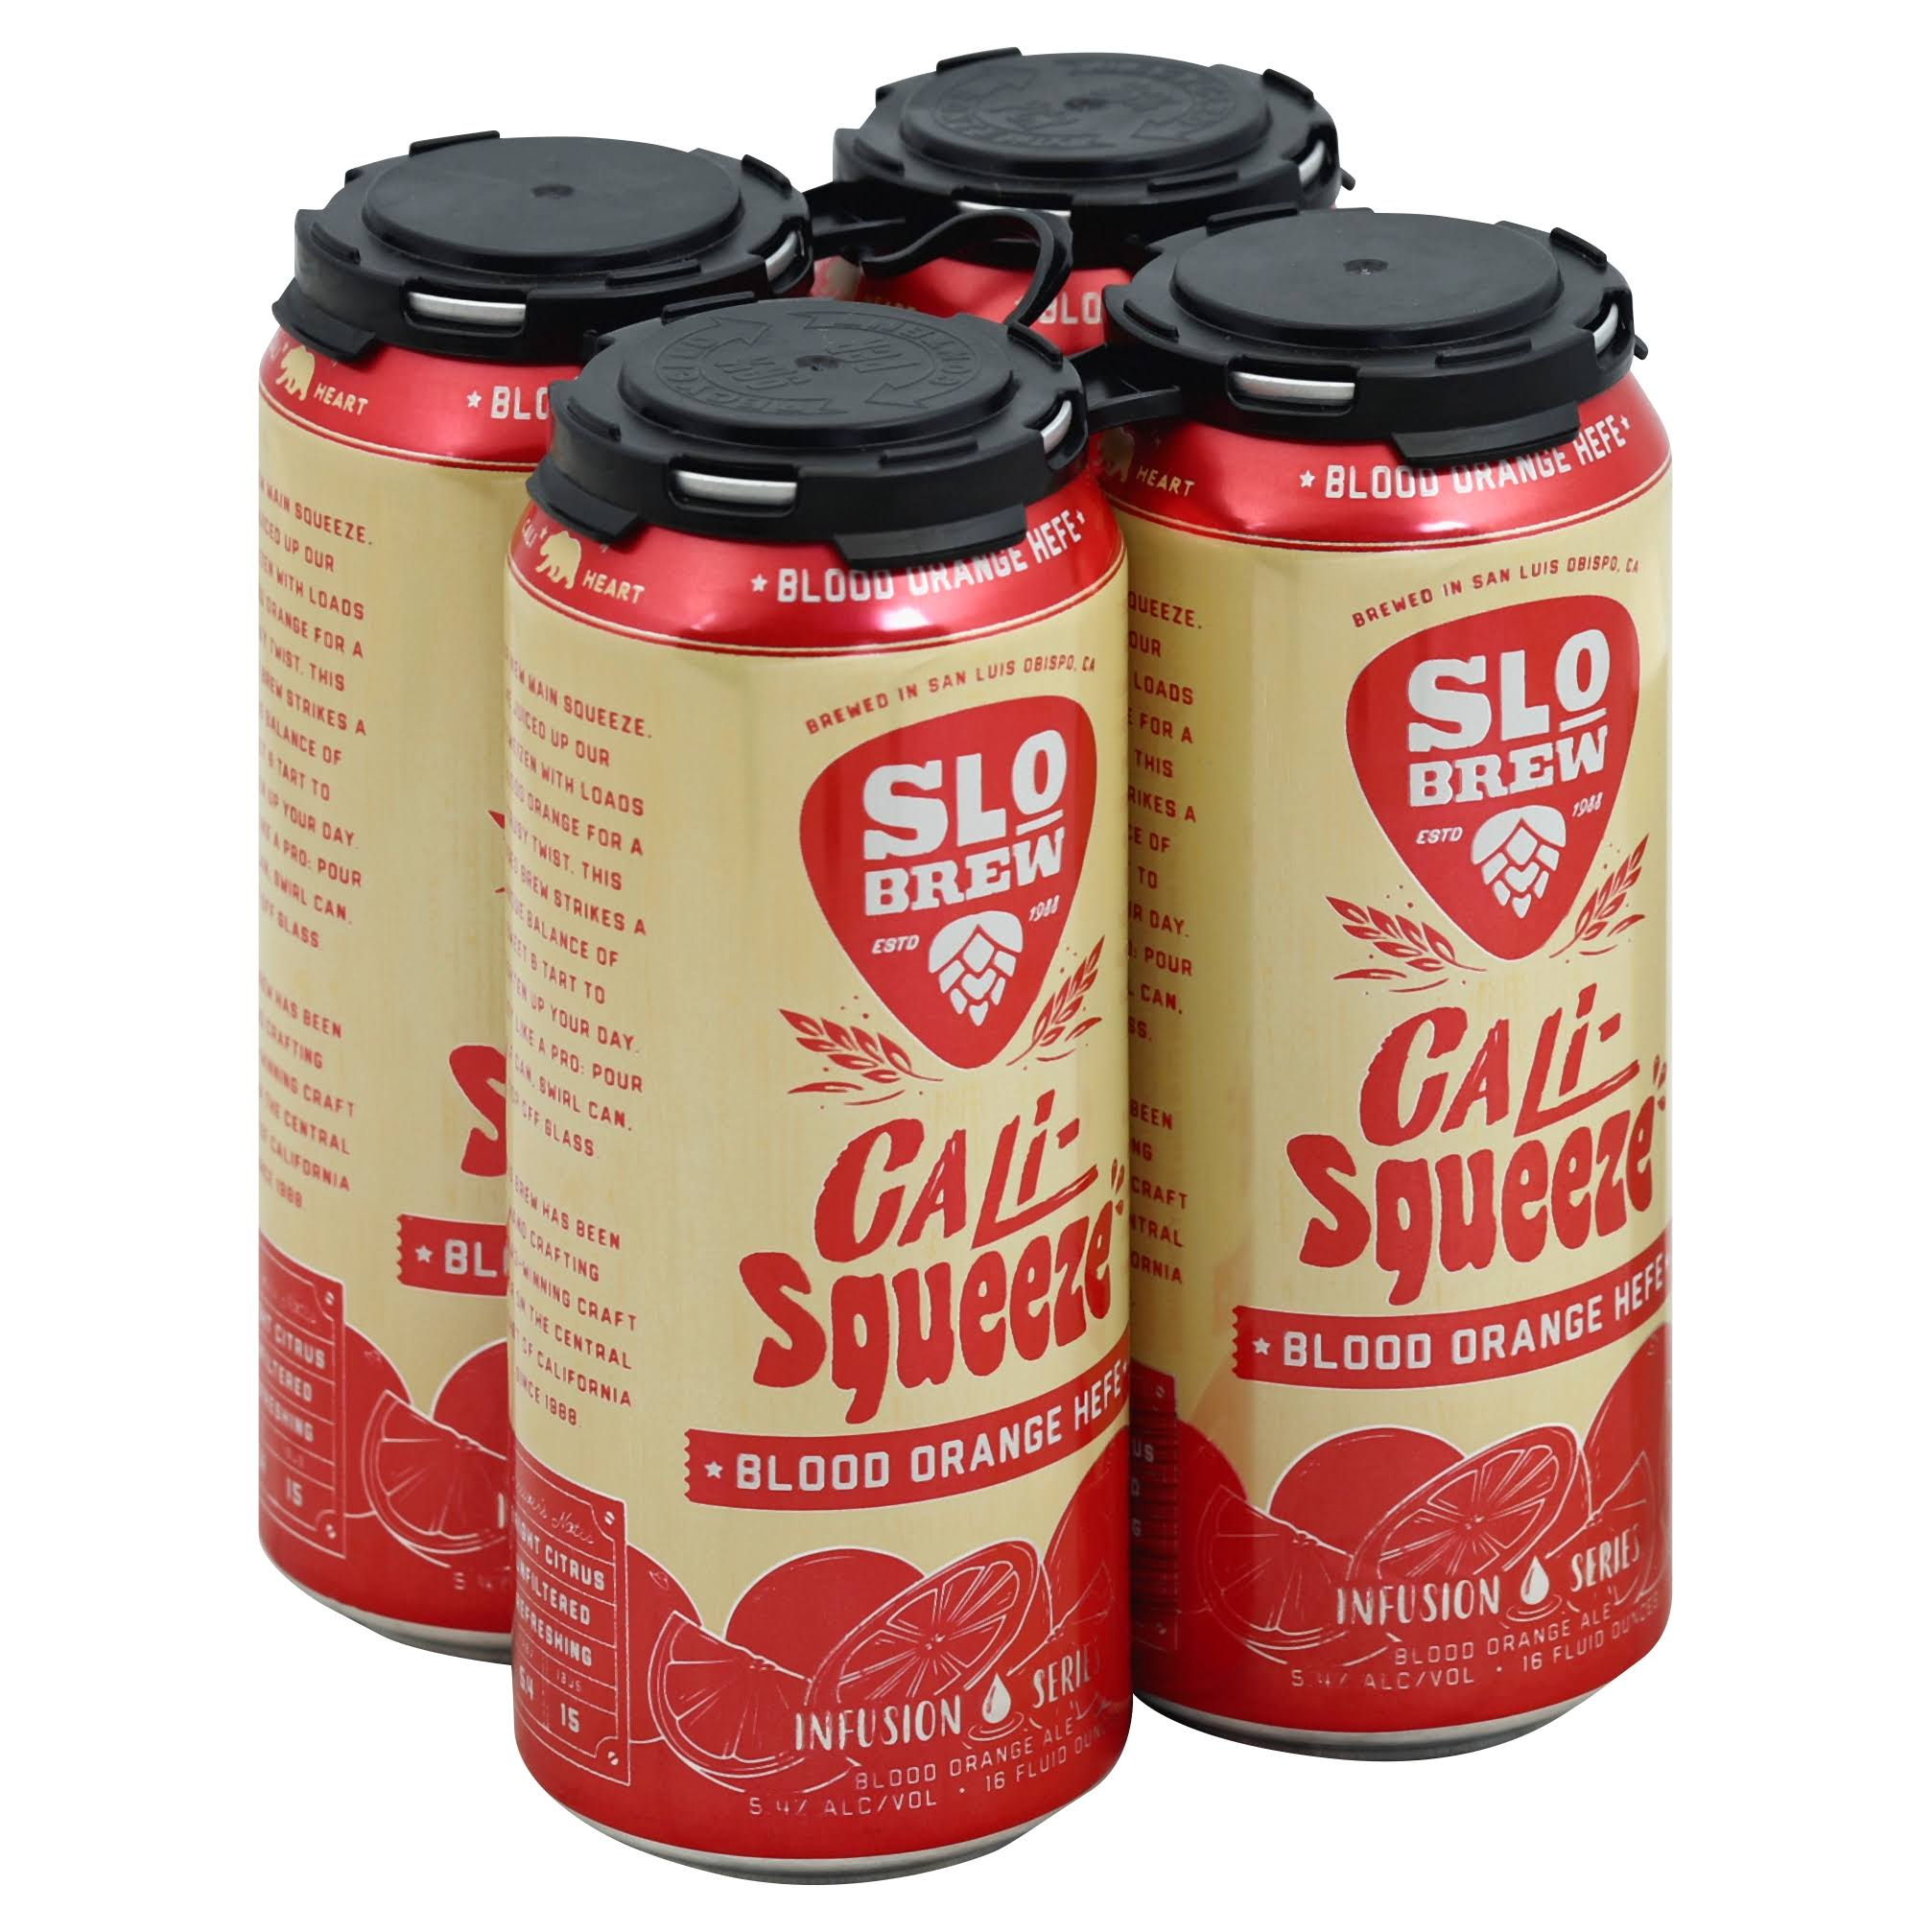 Slo Brew Beer, Cali-Squeeze, Blood Orange, HEFE - 4 - 16 fluid ounce cans